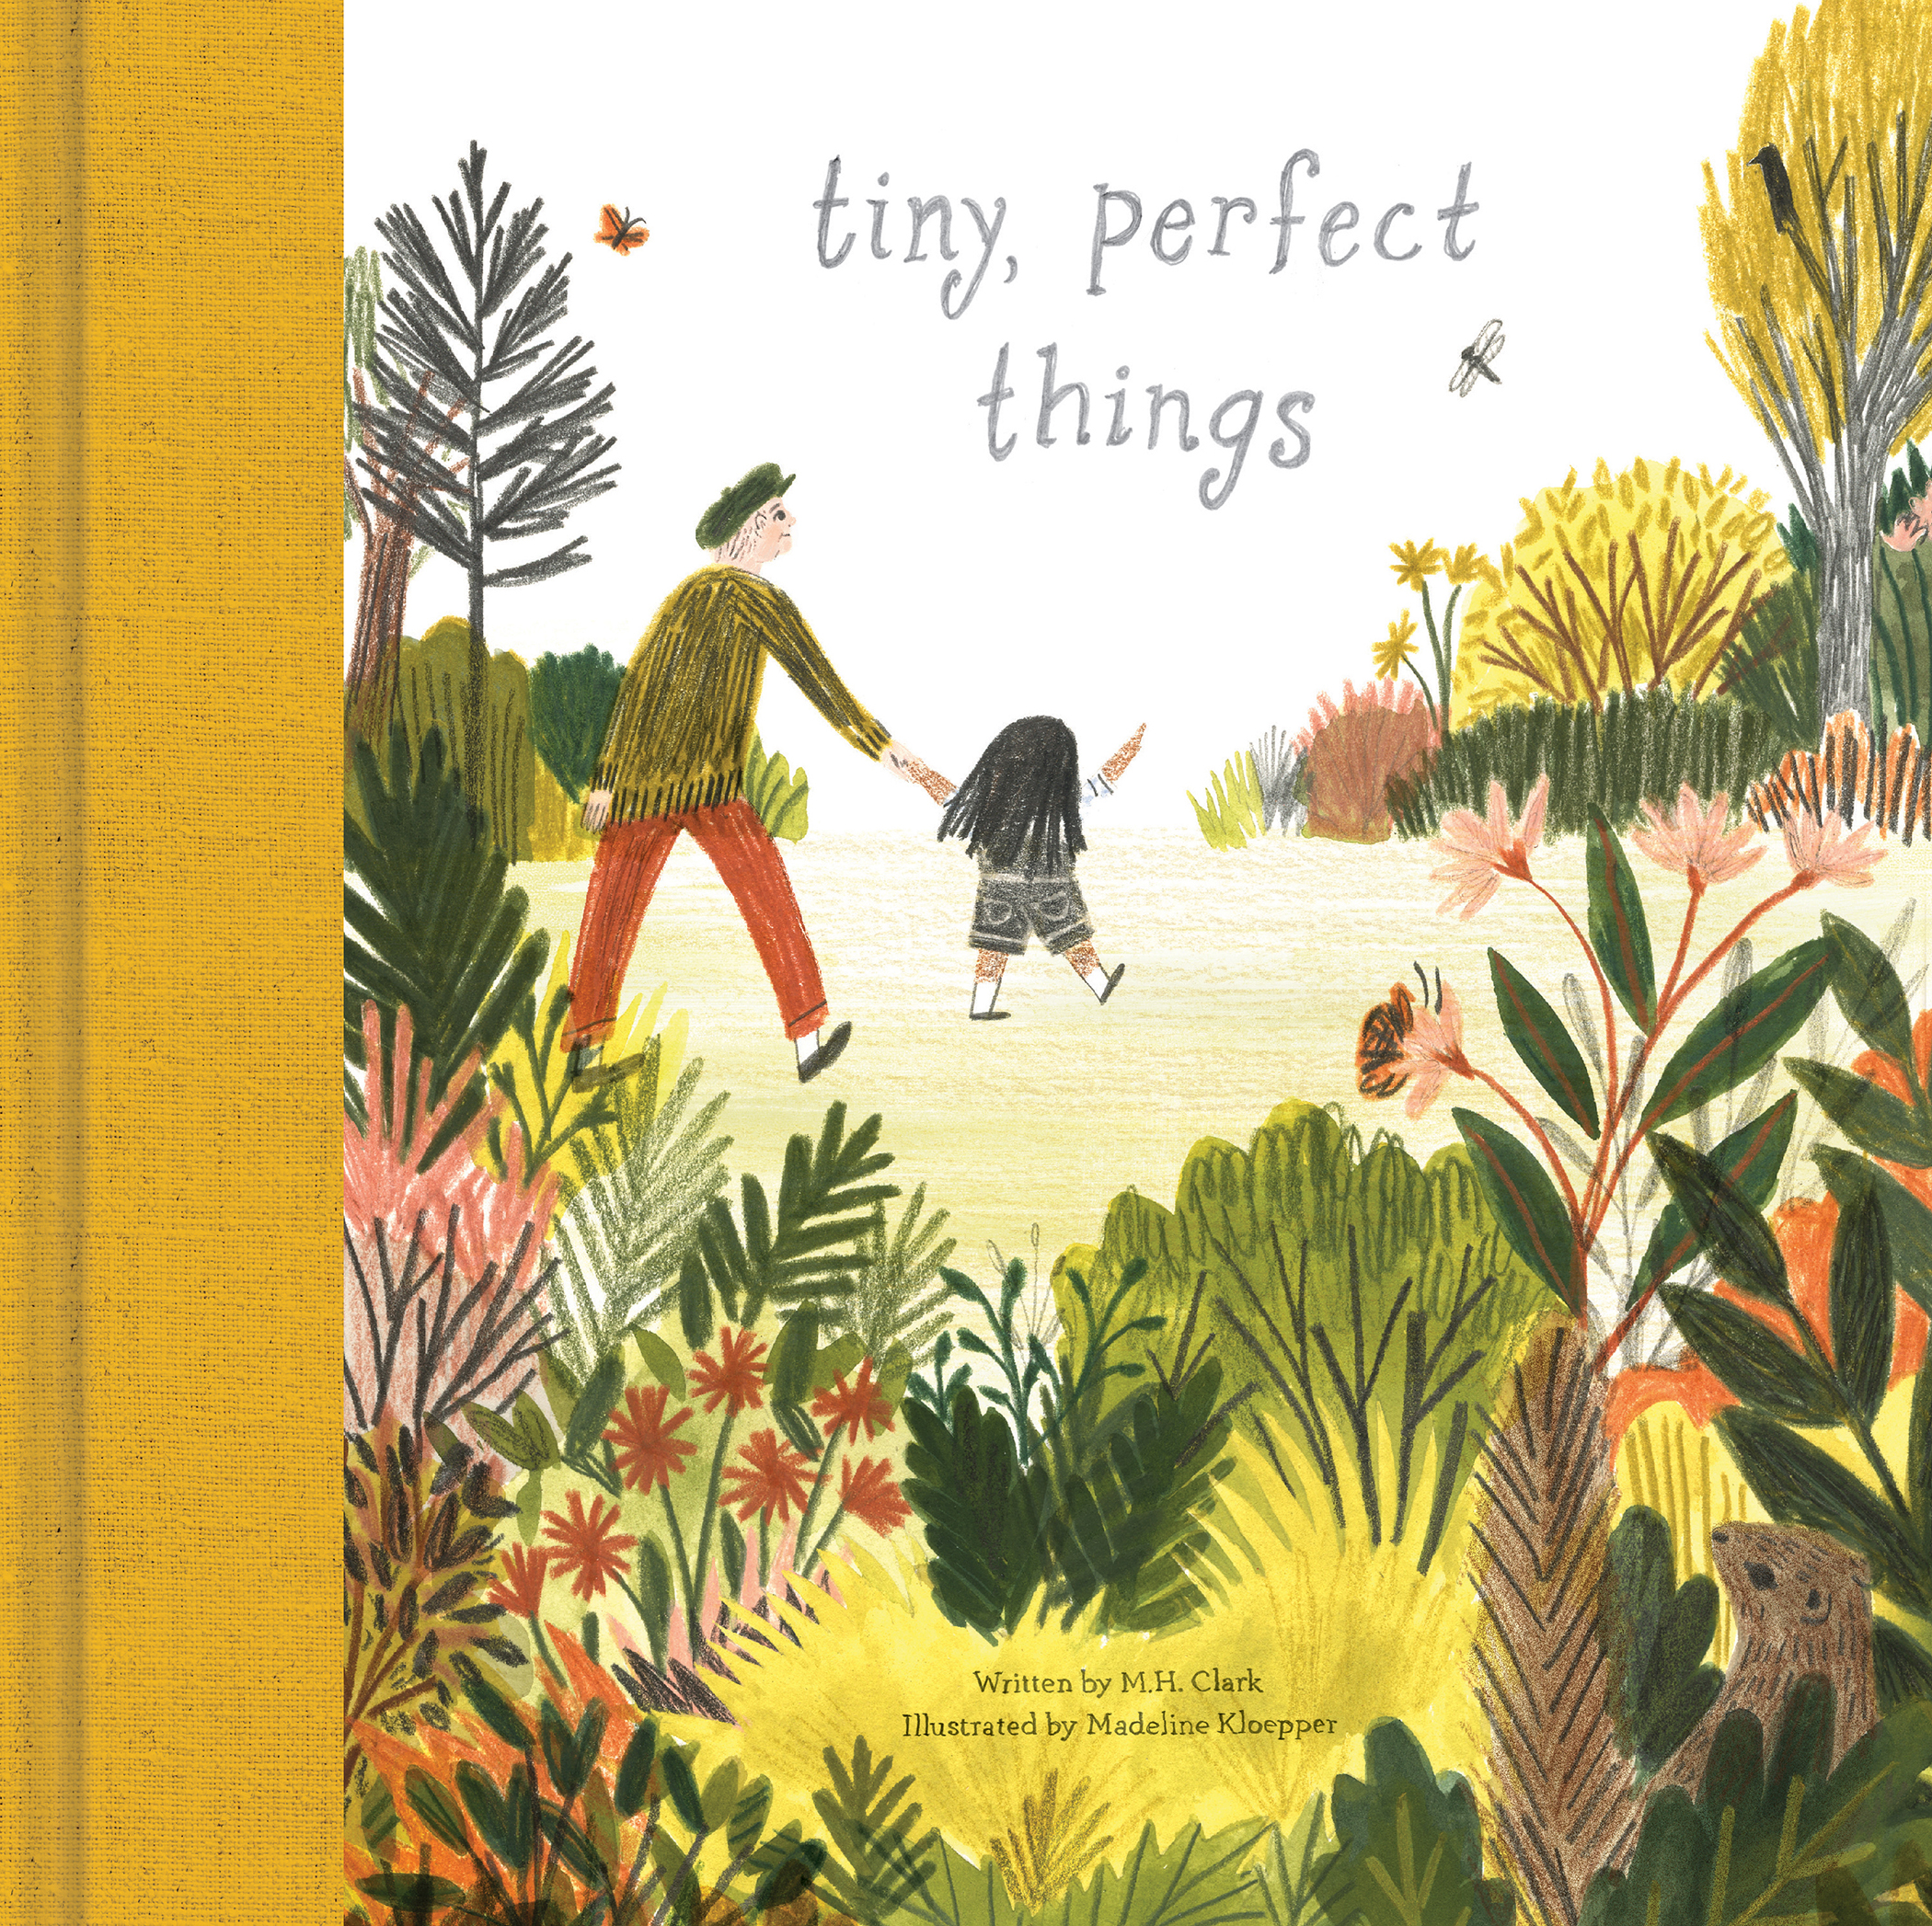 6630_Tiny Perfect Things_Cover_300dpi.jpg